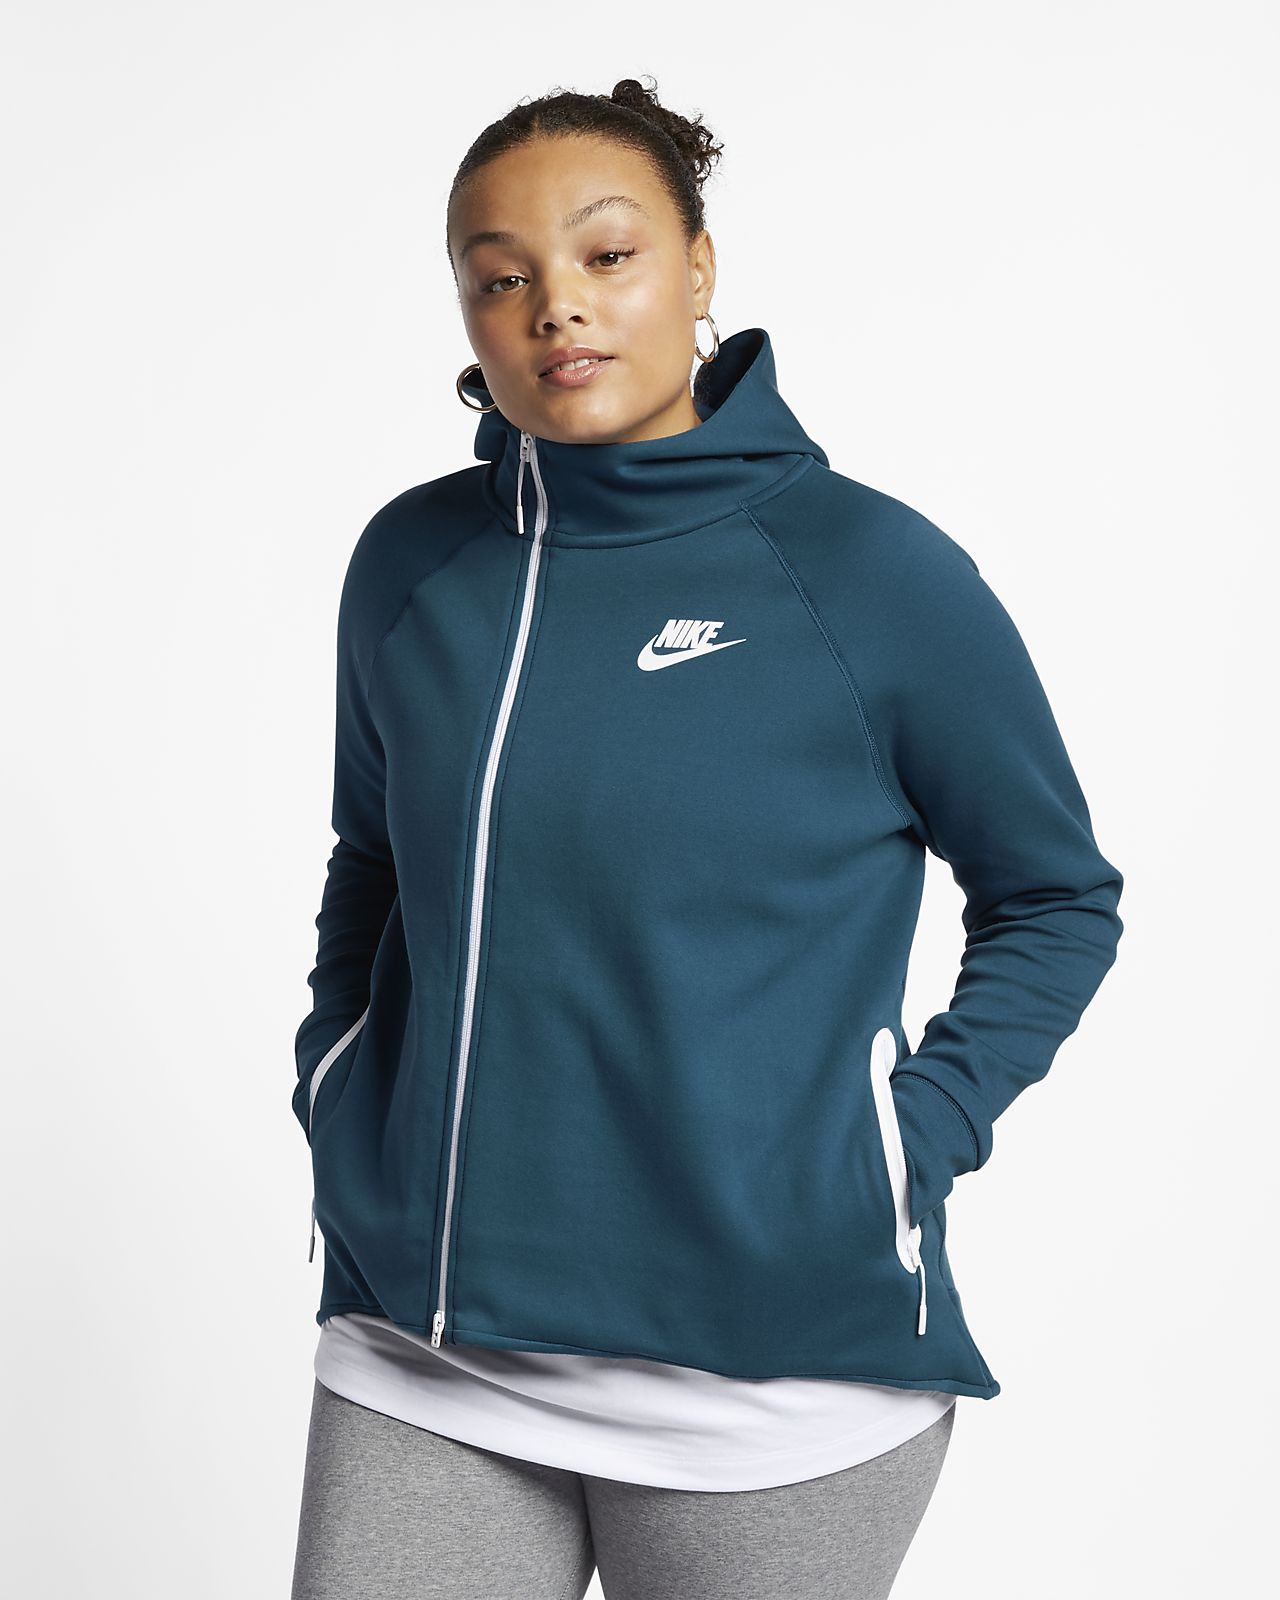 Nike Sportswear Tech Fleece Women's Full-Zip Cape (Plus Size)